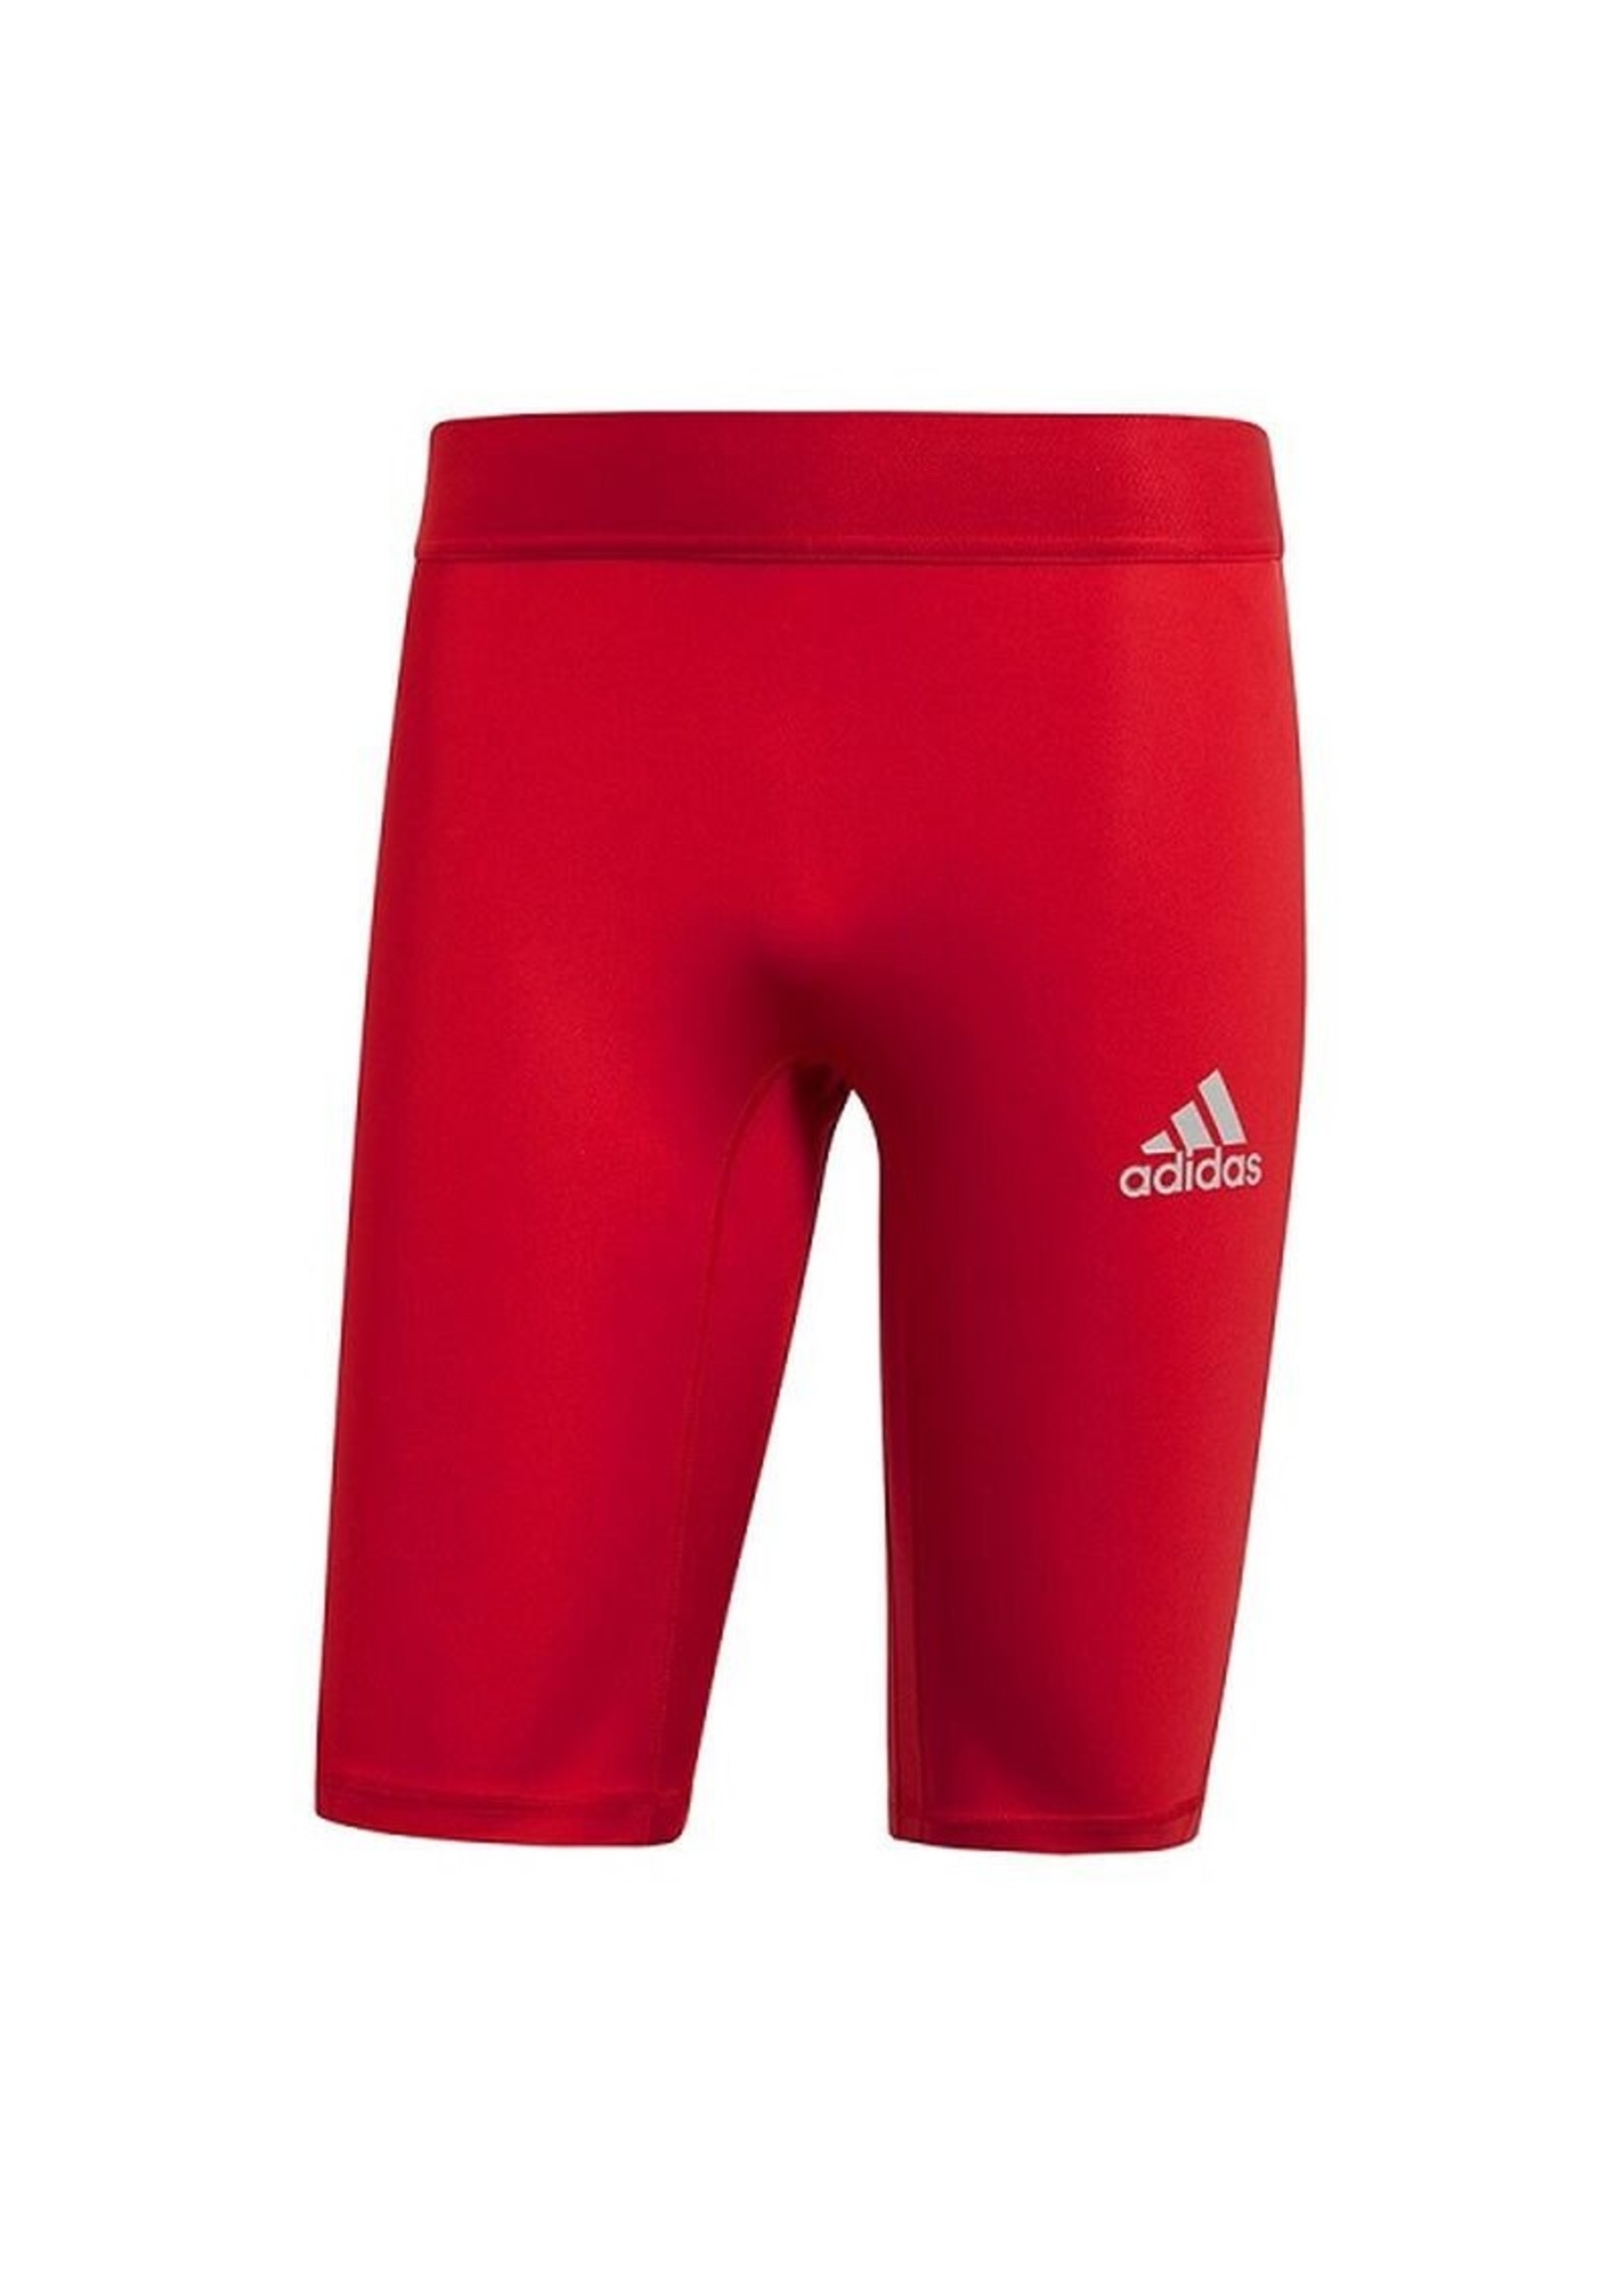 Adidas Compression Red Short Youth